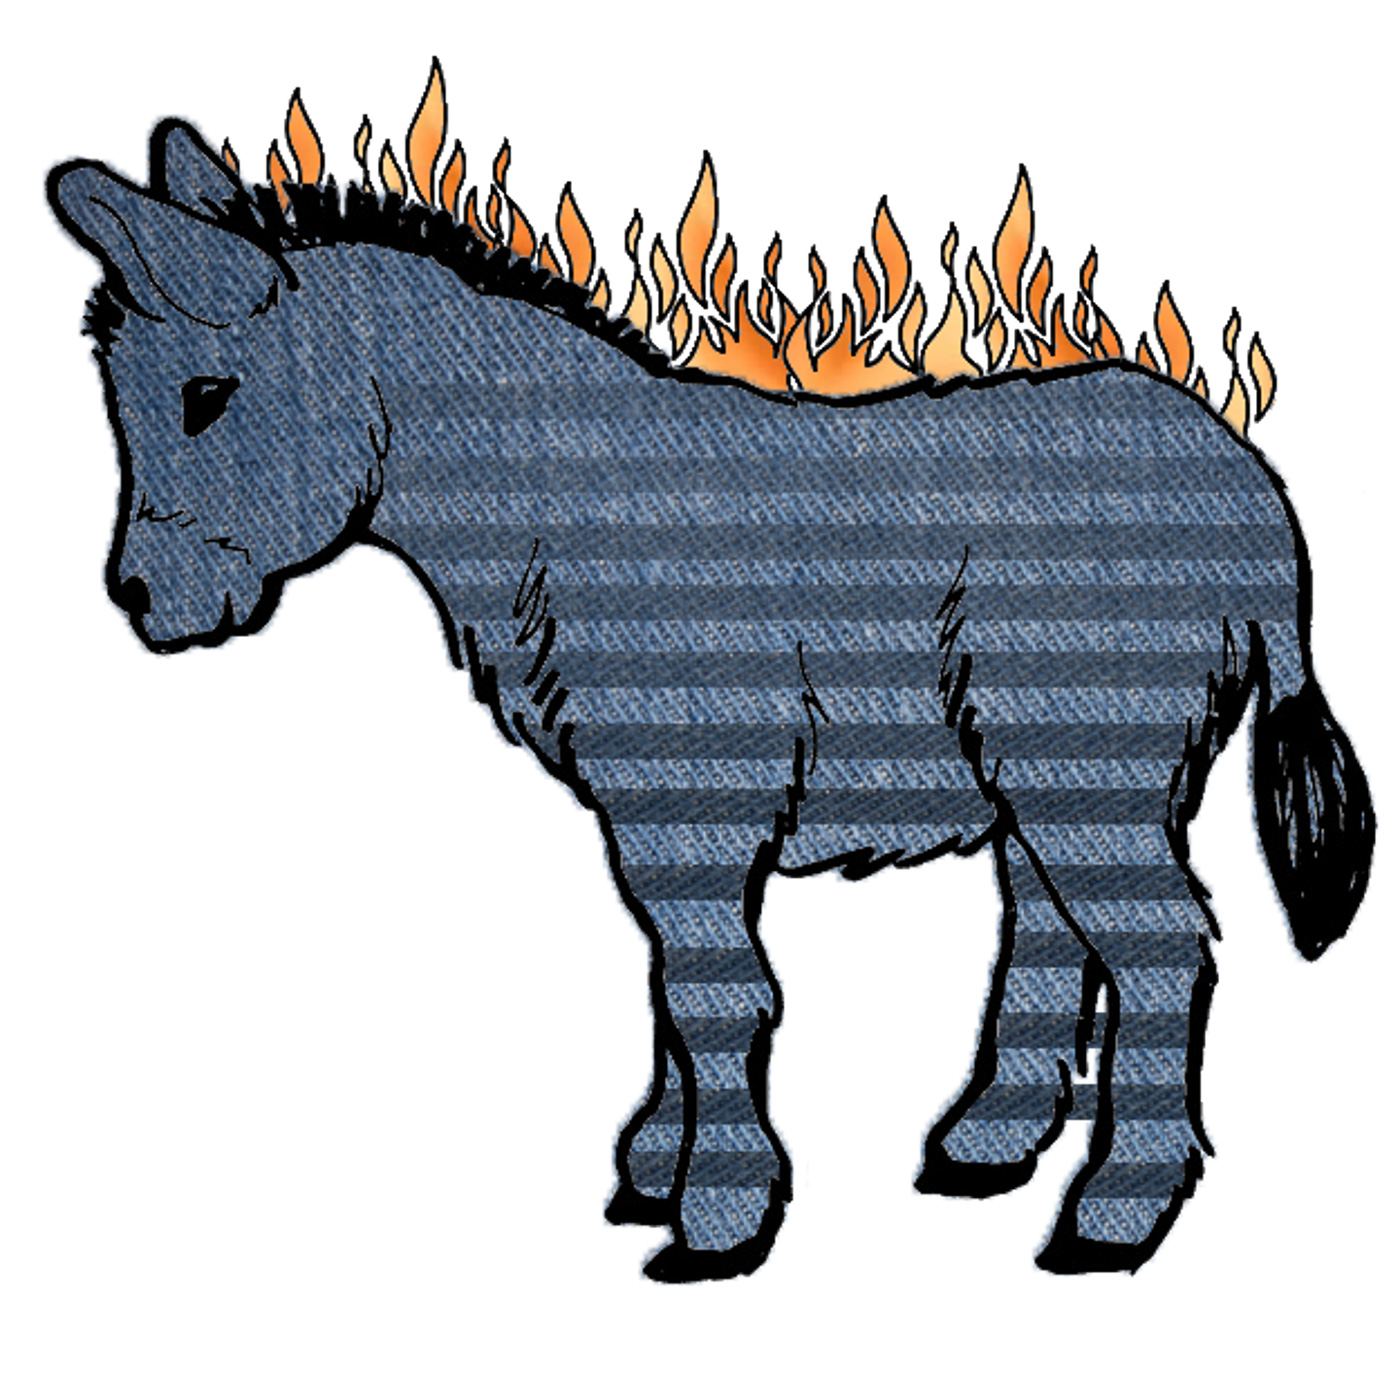 The Flaming Zonkey Podcast